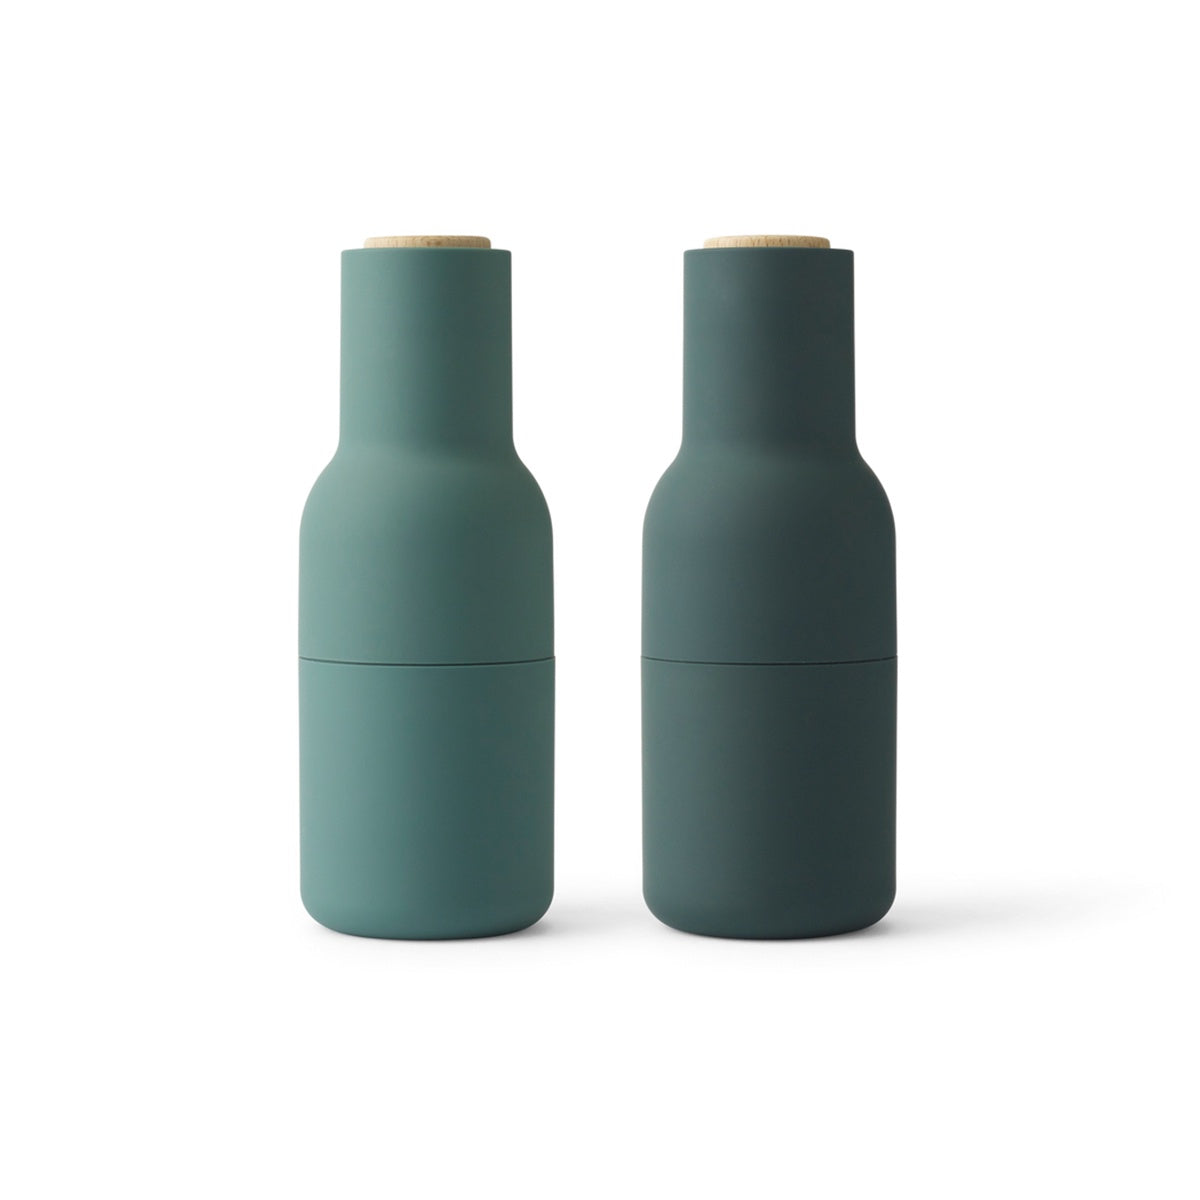 Menu, Bottle Grinder, Dark Green W. Walnut Lid, 2-Pack by Norm Architects